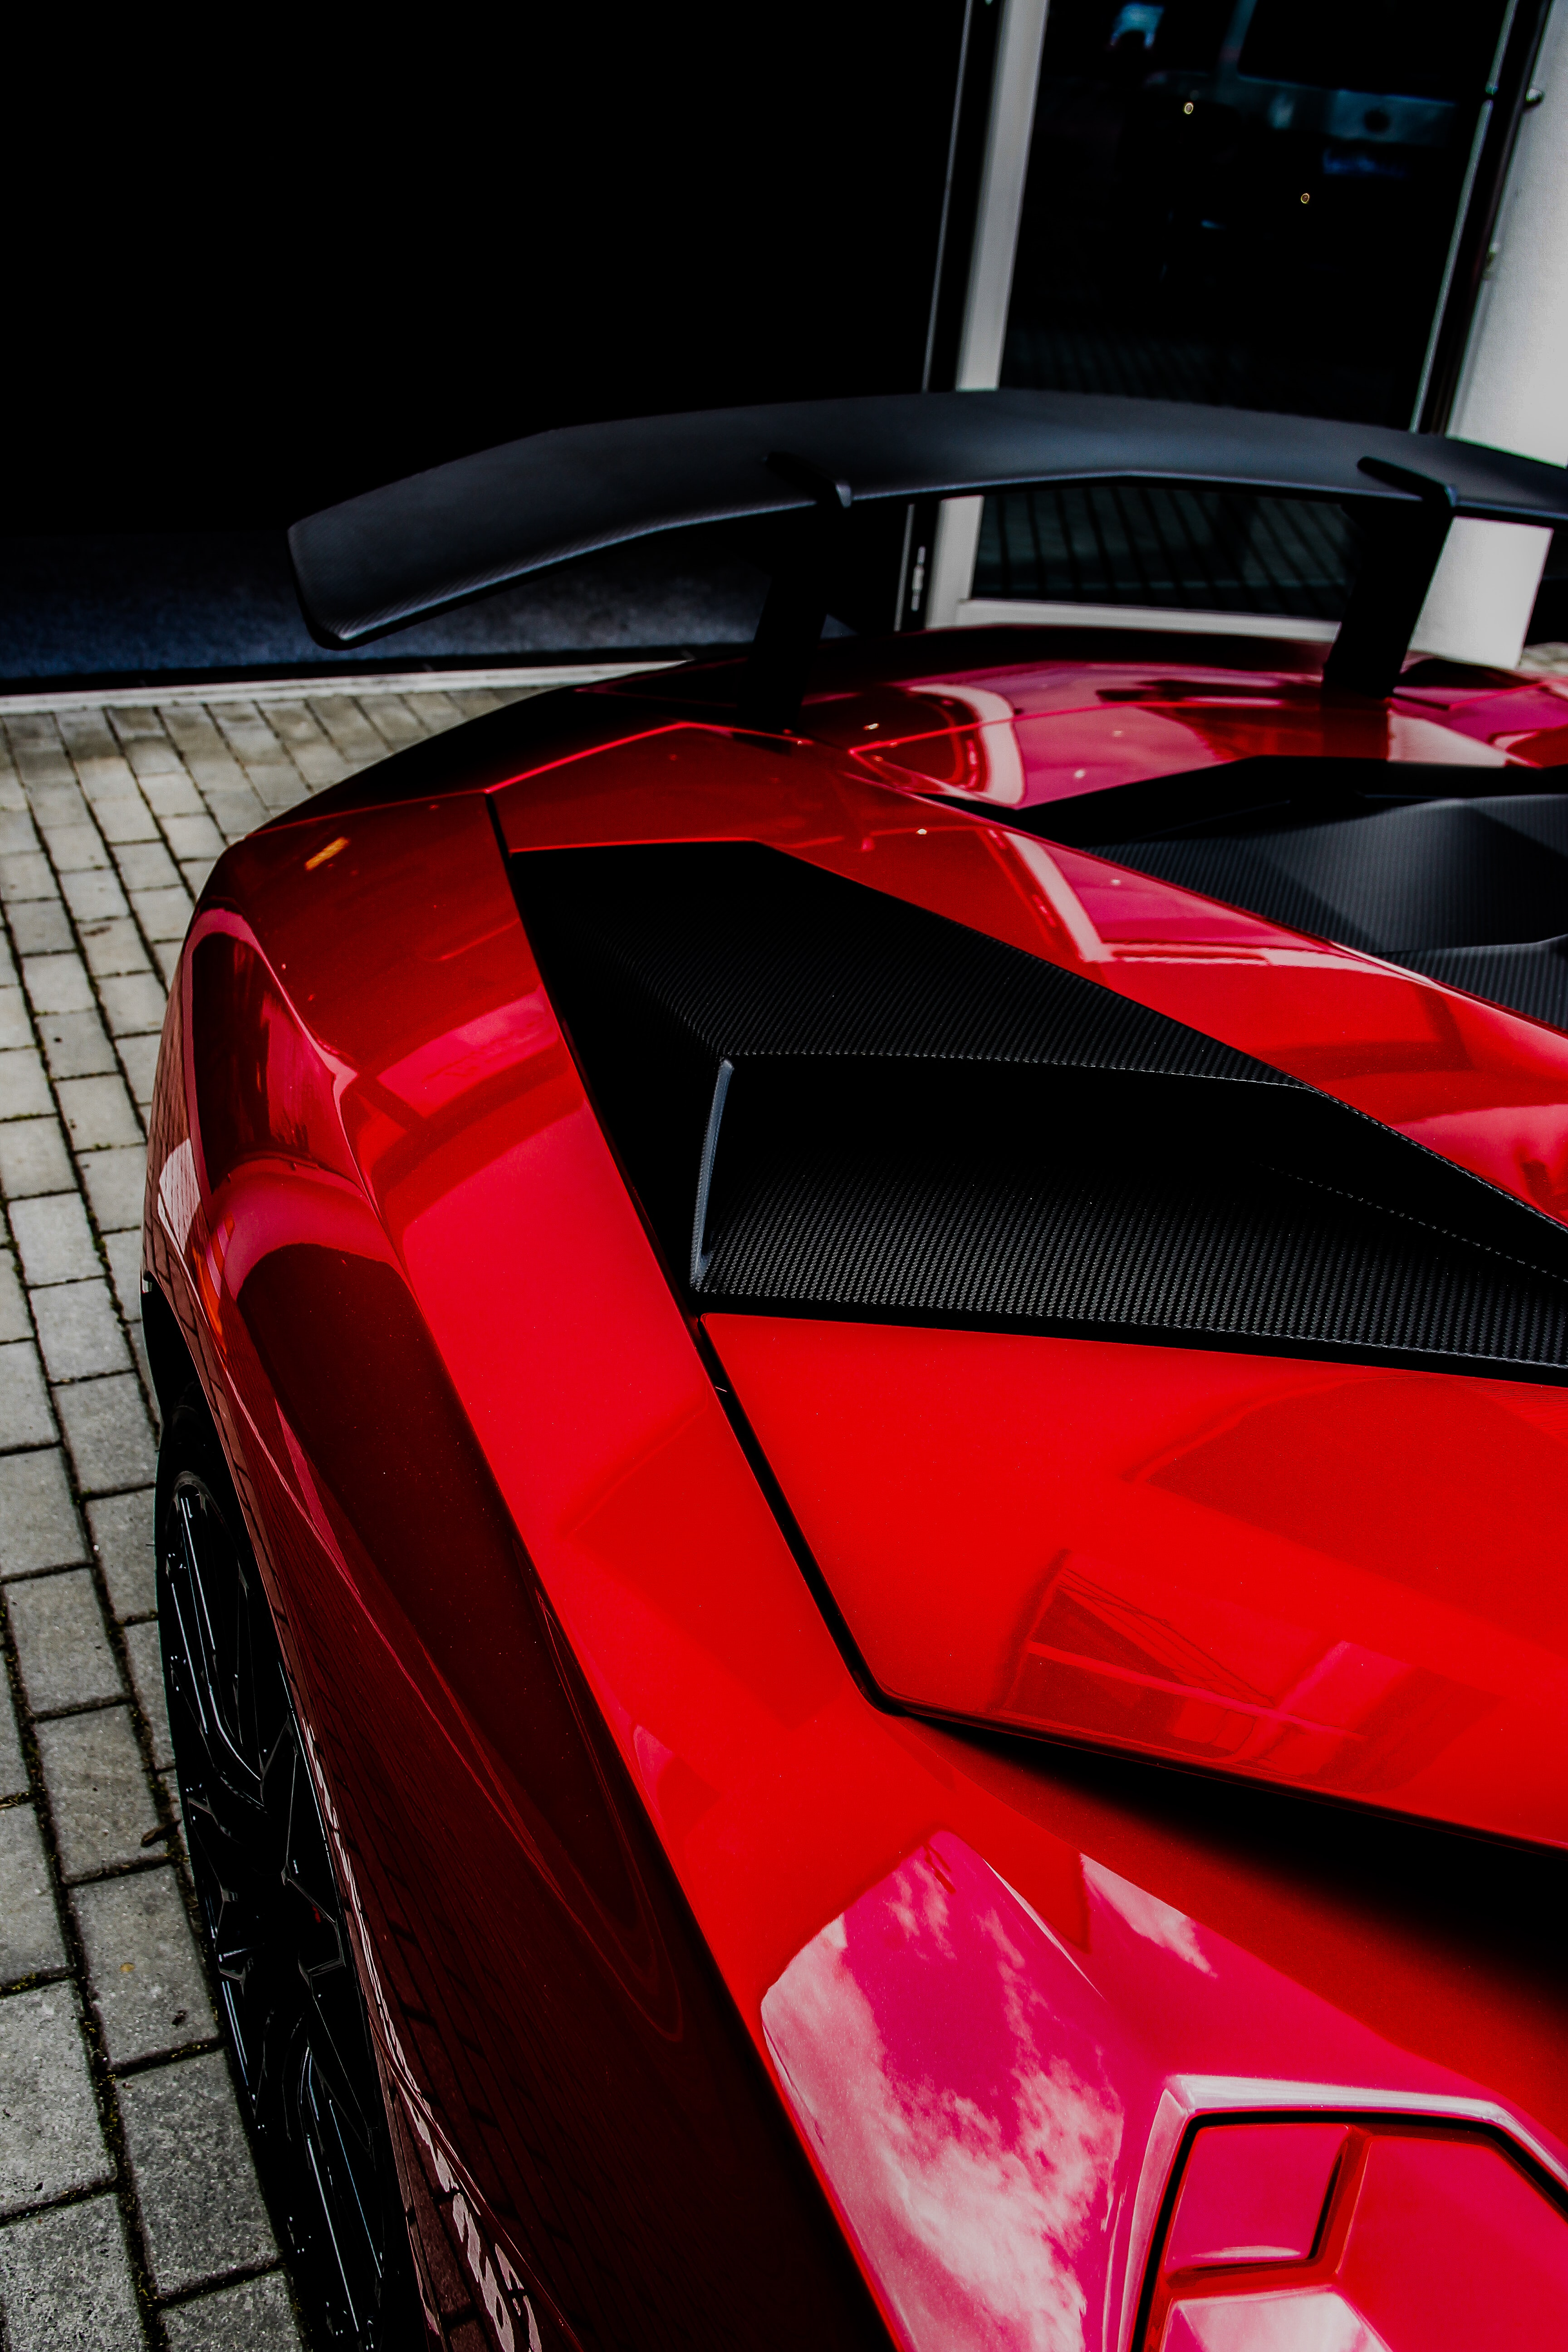 100 Lamborghini Aventador Sv Pictures Download Free Images On